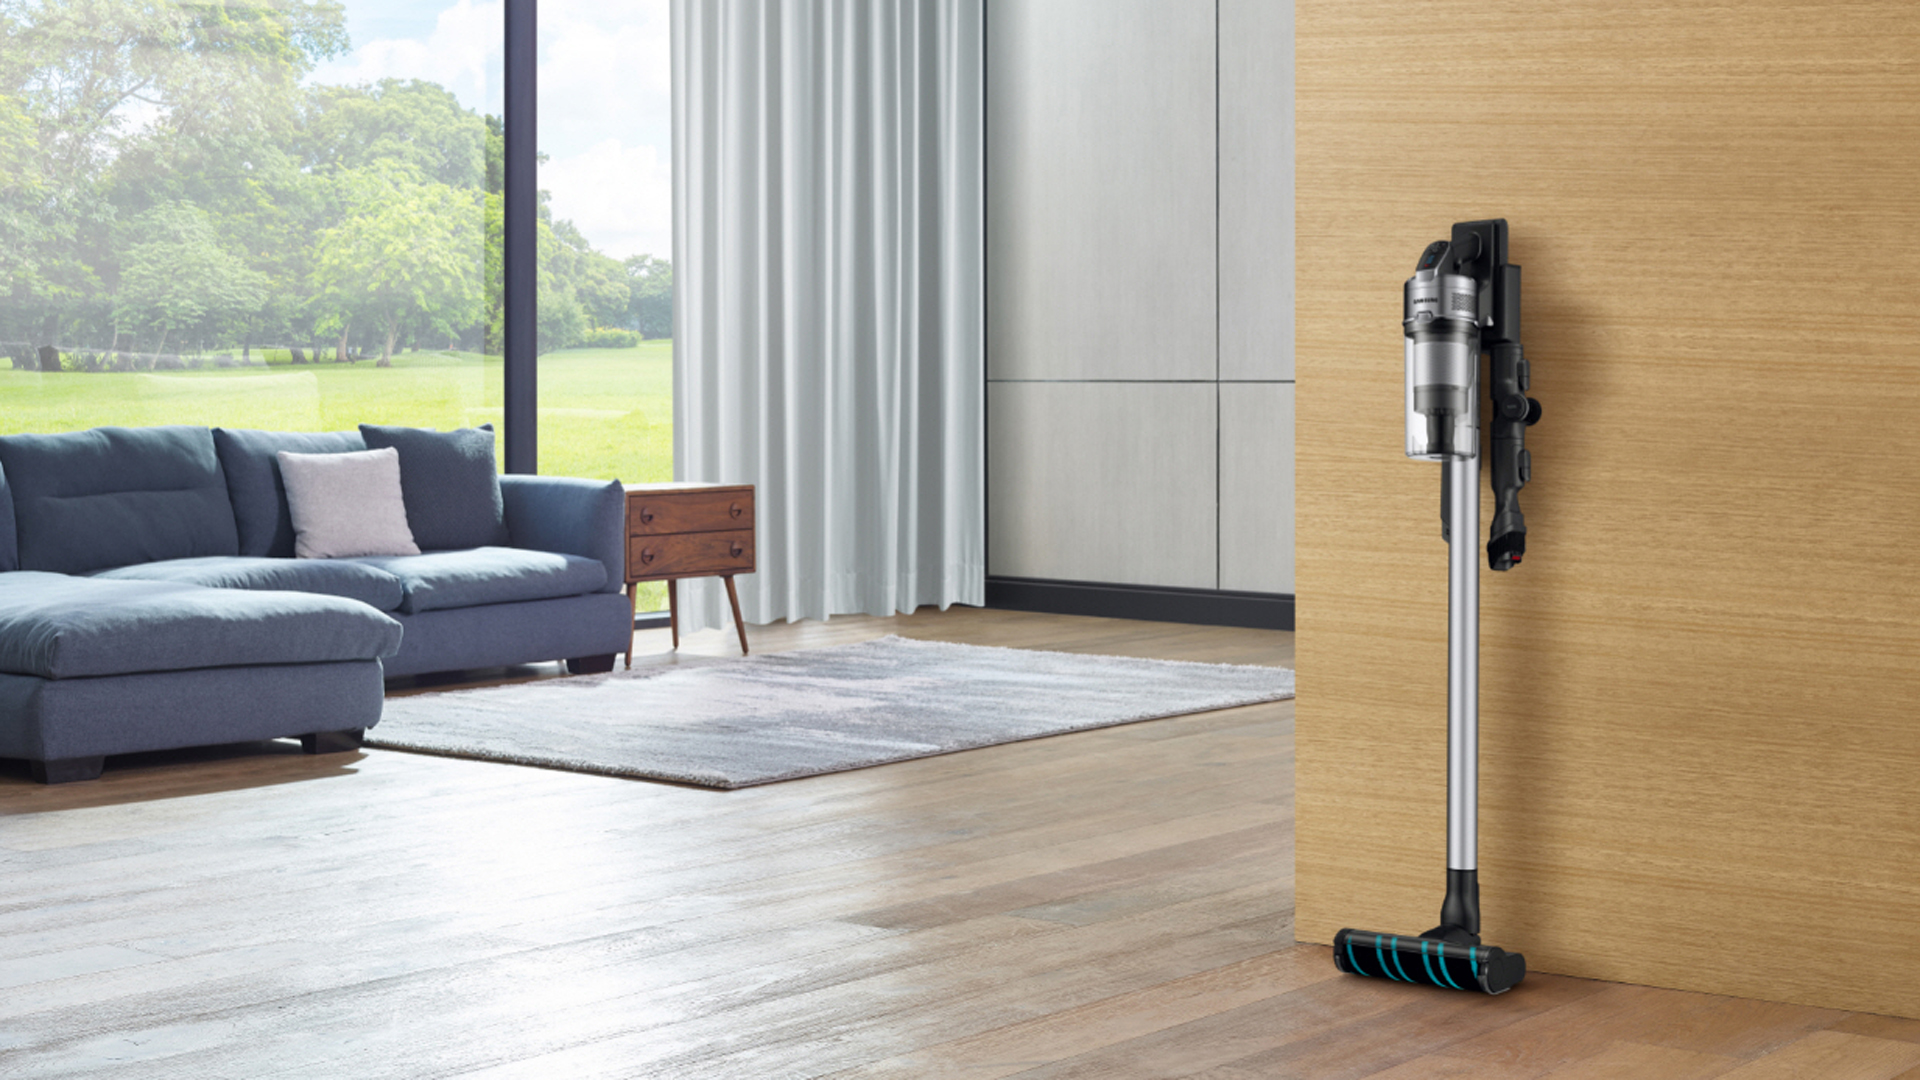 Best cordless vacuum cleaner 2021: the best cordless vacuums and stick vacs